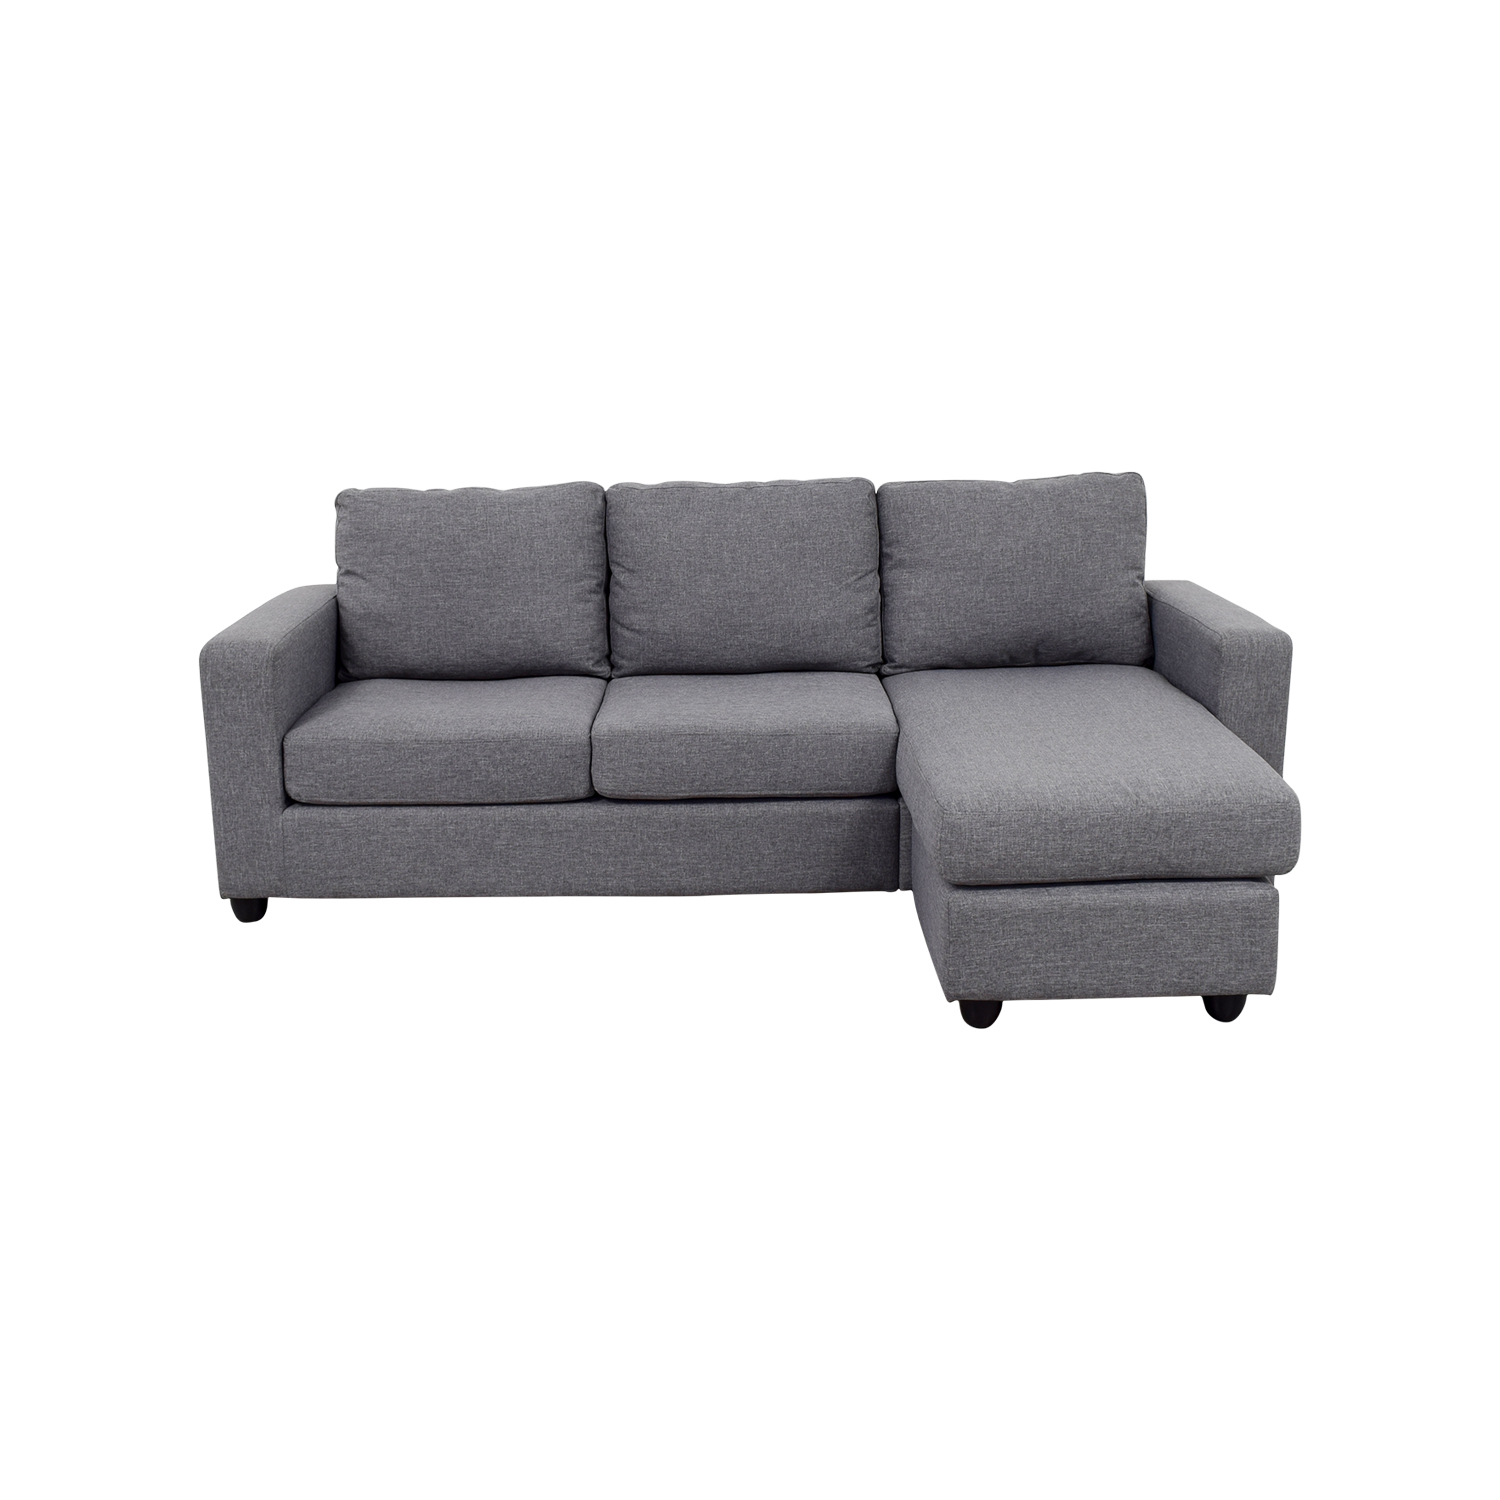 Grey L-Shaped Chaise Couch price